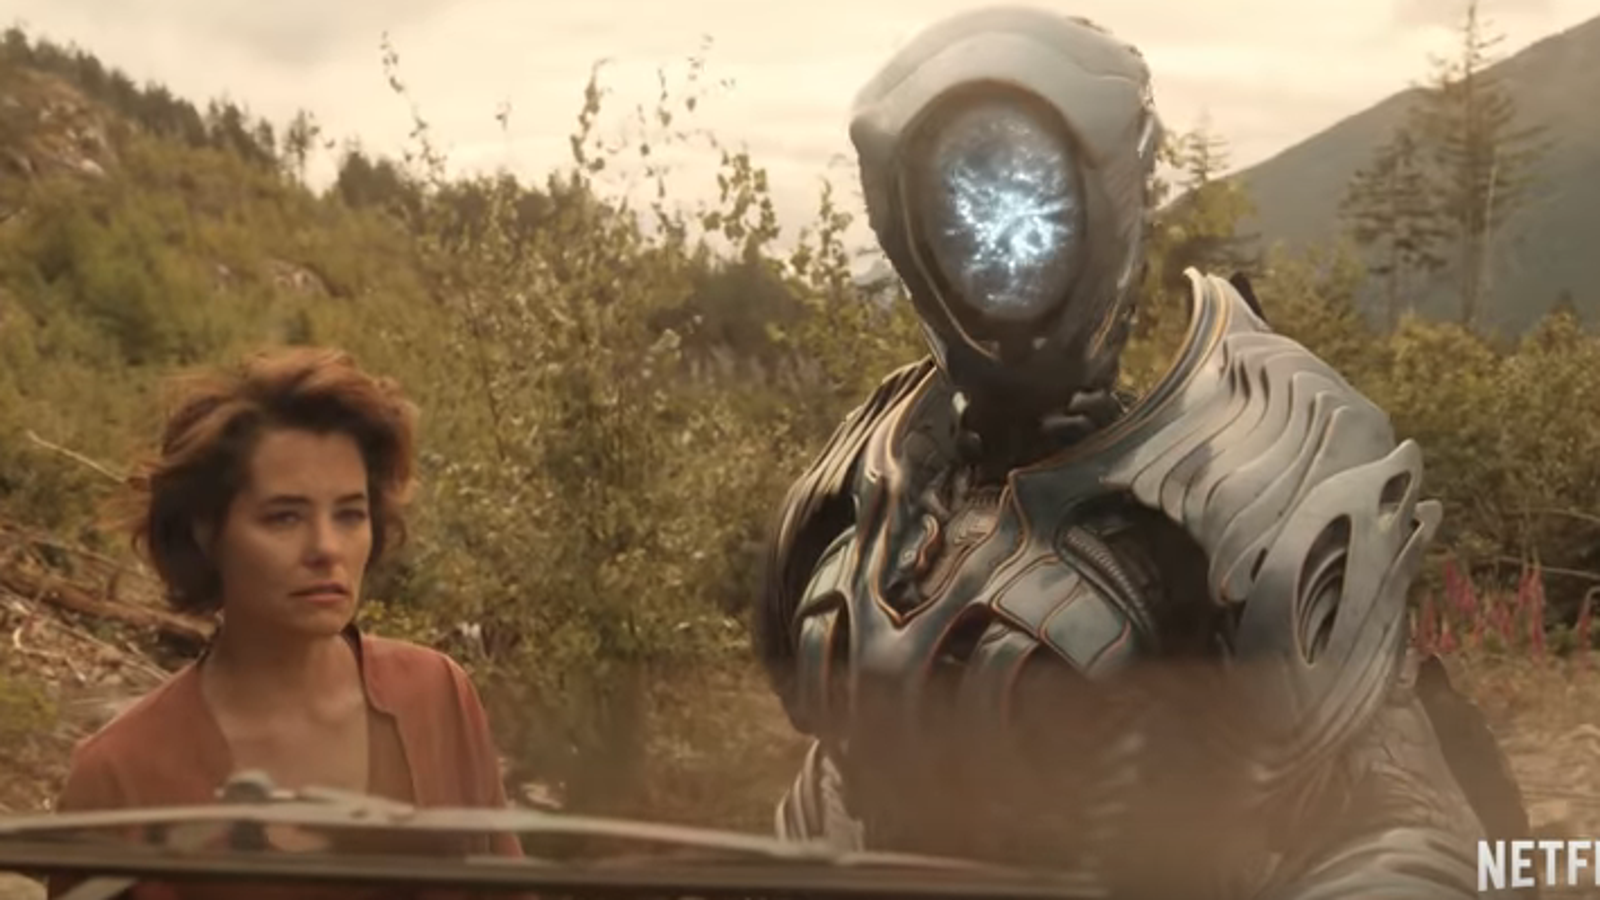 The full trailer for Netflix\'s Lost In Space finally shows us the robot